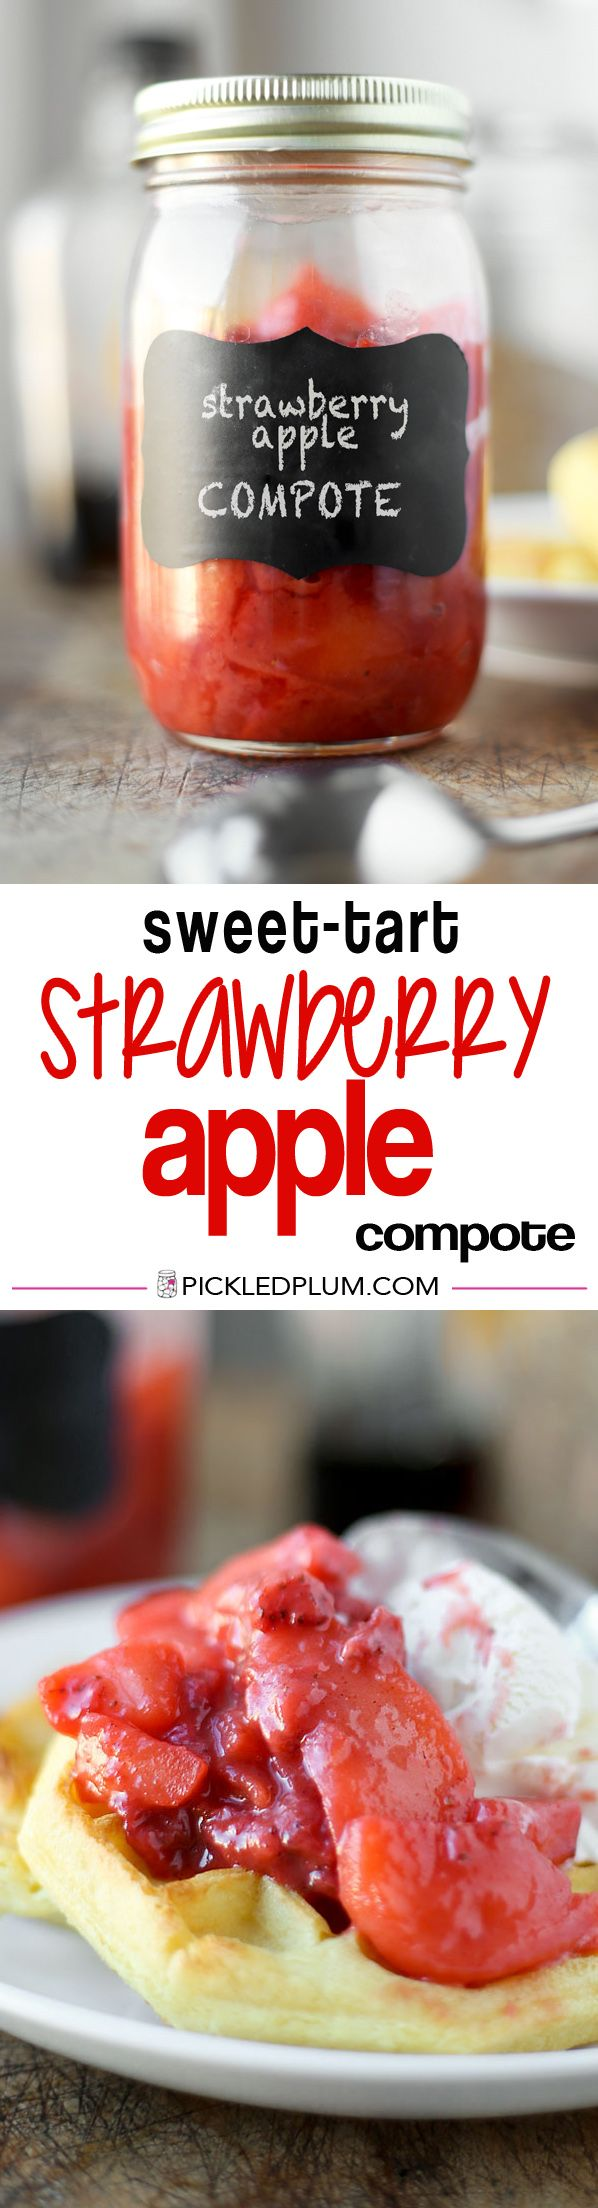 Sweet-Tart Strawberry Apple Compote Recipe. Apples and strawberries cooked in a thick syrup with spices and a little sugar. Pairs beautifully with waffles and ice cream (SO GOOD), oatmeal, duck or pork. Highly Addictive! | pickledplum.com